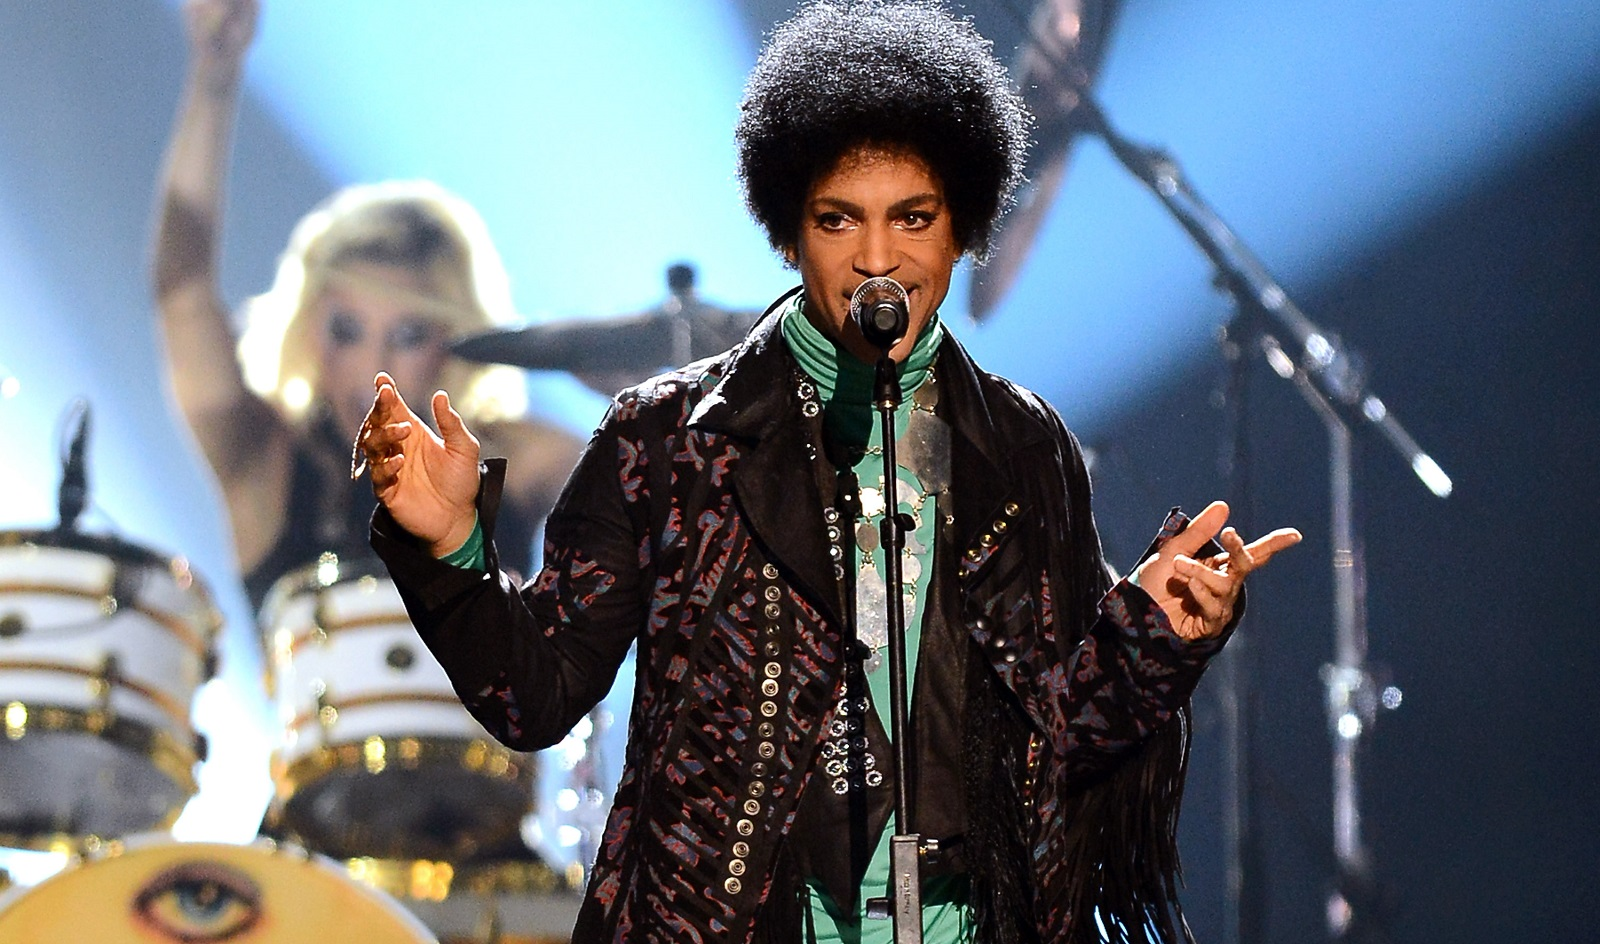 Prince is the subject of a new biography. (Ethan Miller/Getty Images)